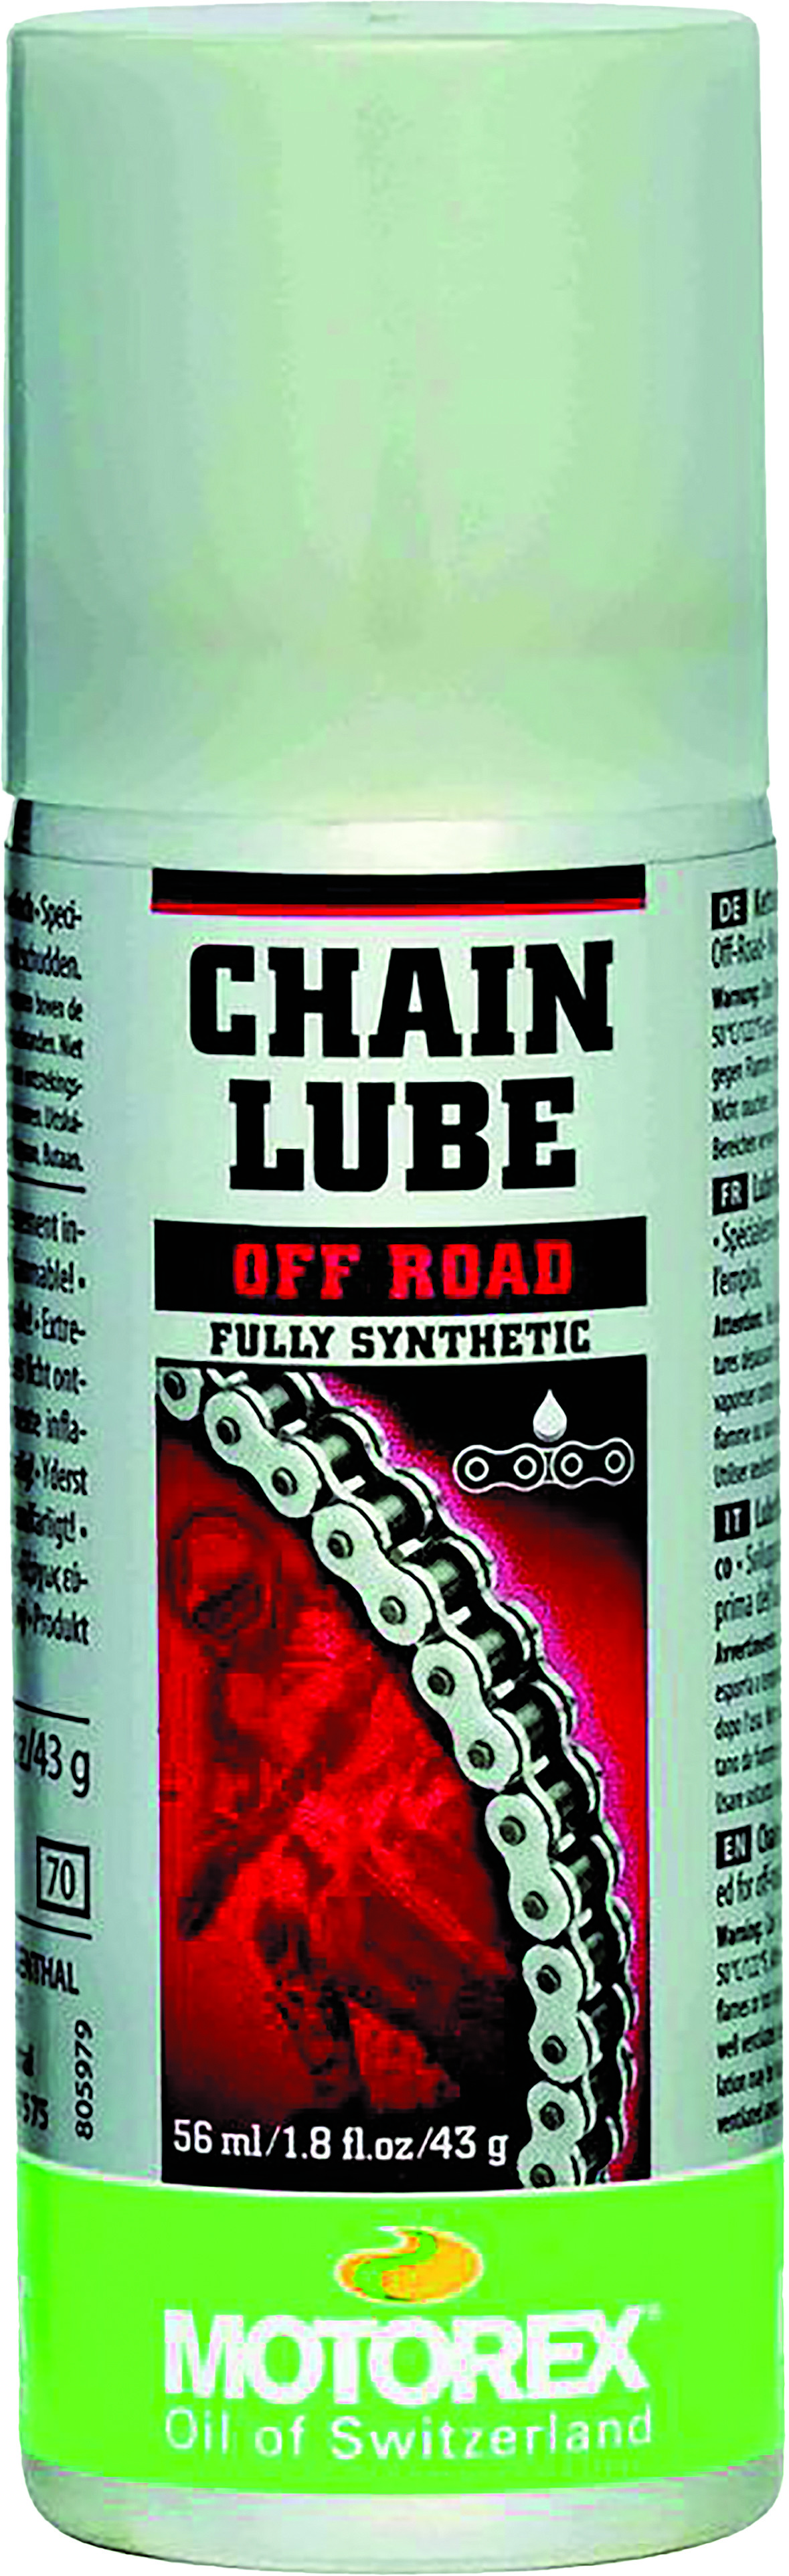 Offroad Chain Lube 500Ml